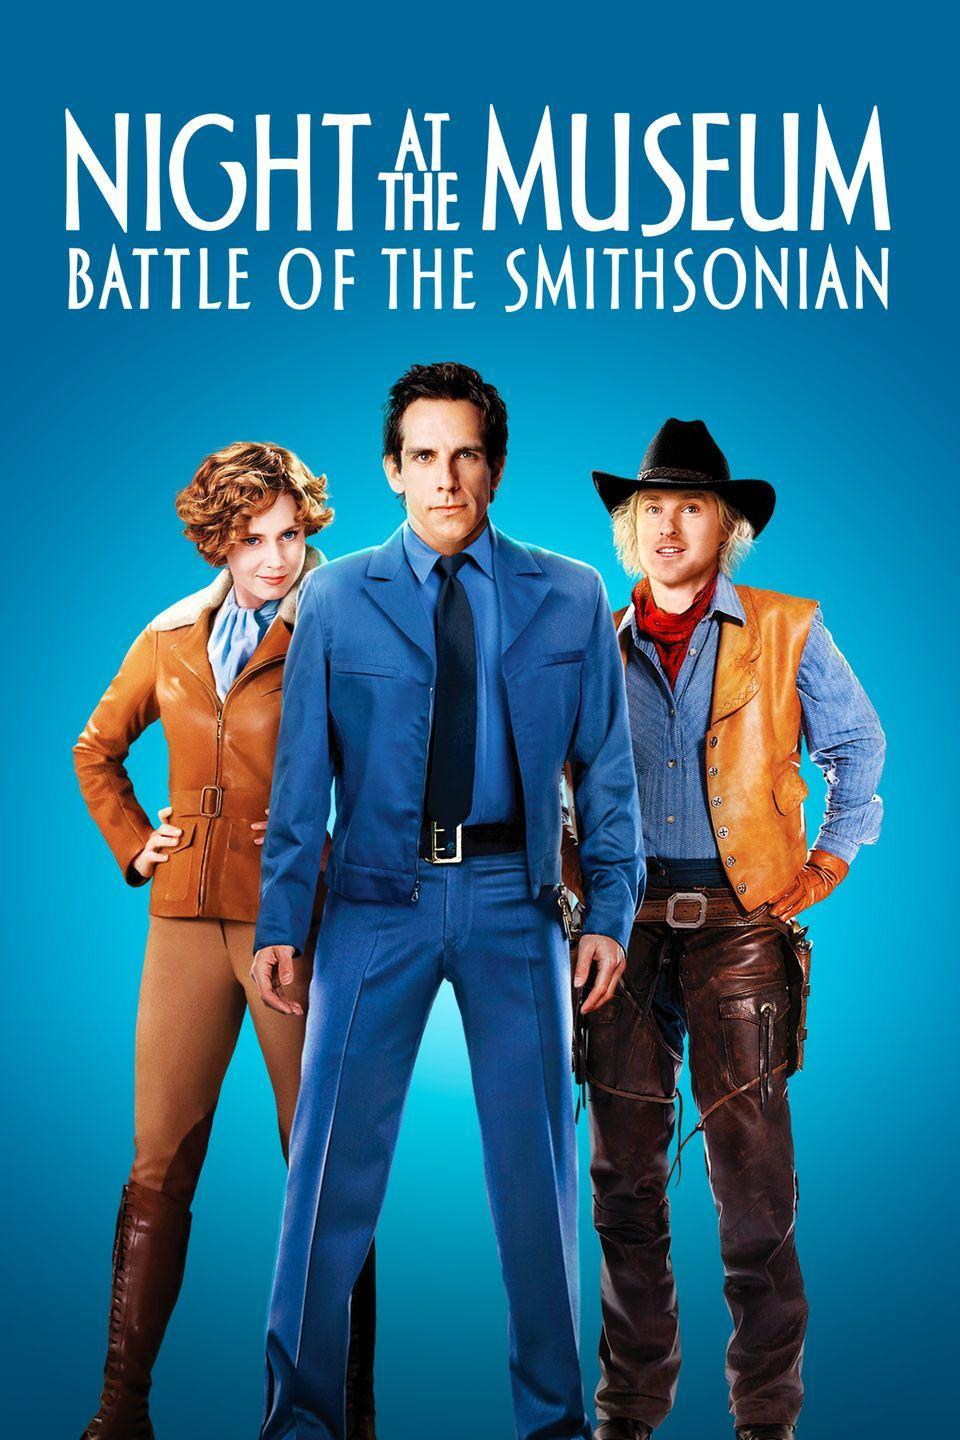 """<p>Make it a double feature, and watch <em>Night at the Museum: Battle of the Smithsonian</em>. Like the first film, it features several American historical figures. In this sequel, Ben Stiller's character goes to the Smithsonian in Washington D.C., in hopes of rescuing his friends who have been sent there by mistake. </p><p><a class=""""link rapid-noclick-resp"""" href=""""https://www.amazon.com/Night-at-Museum-Battle-Smithsonian/dp/B002QREA56/ref=sr_1_1?tag=syn-yahoo-20&ascsubtag=%5Bartid%7C10070.g.36156094%5Bsrc%7Cyahoo-us"""" rel=""""nofollow noopener"""" target=""""_blank"""" data-ylk=""""slk:STREAM NOW"""">STREAM NOW</a></p>"""